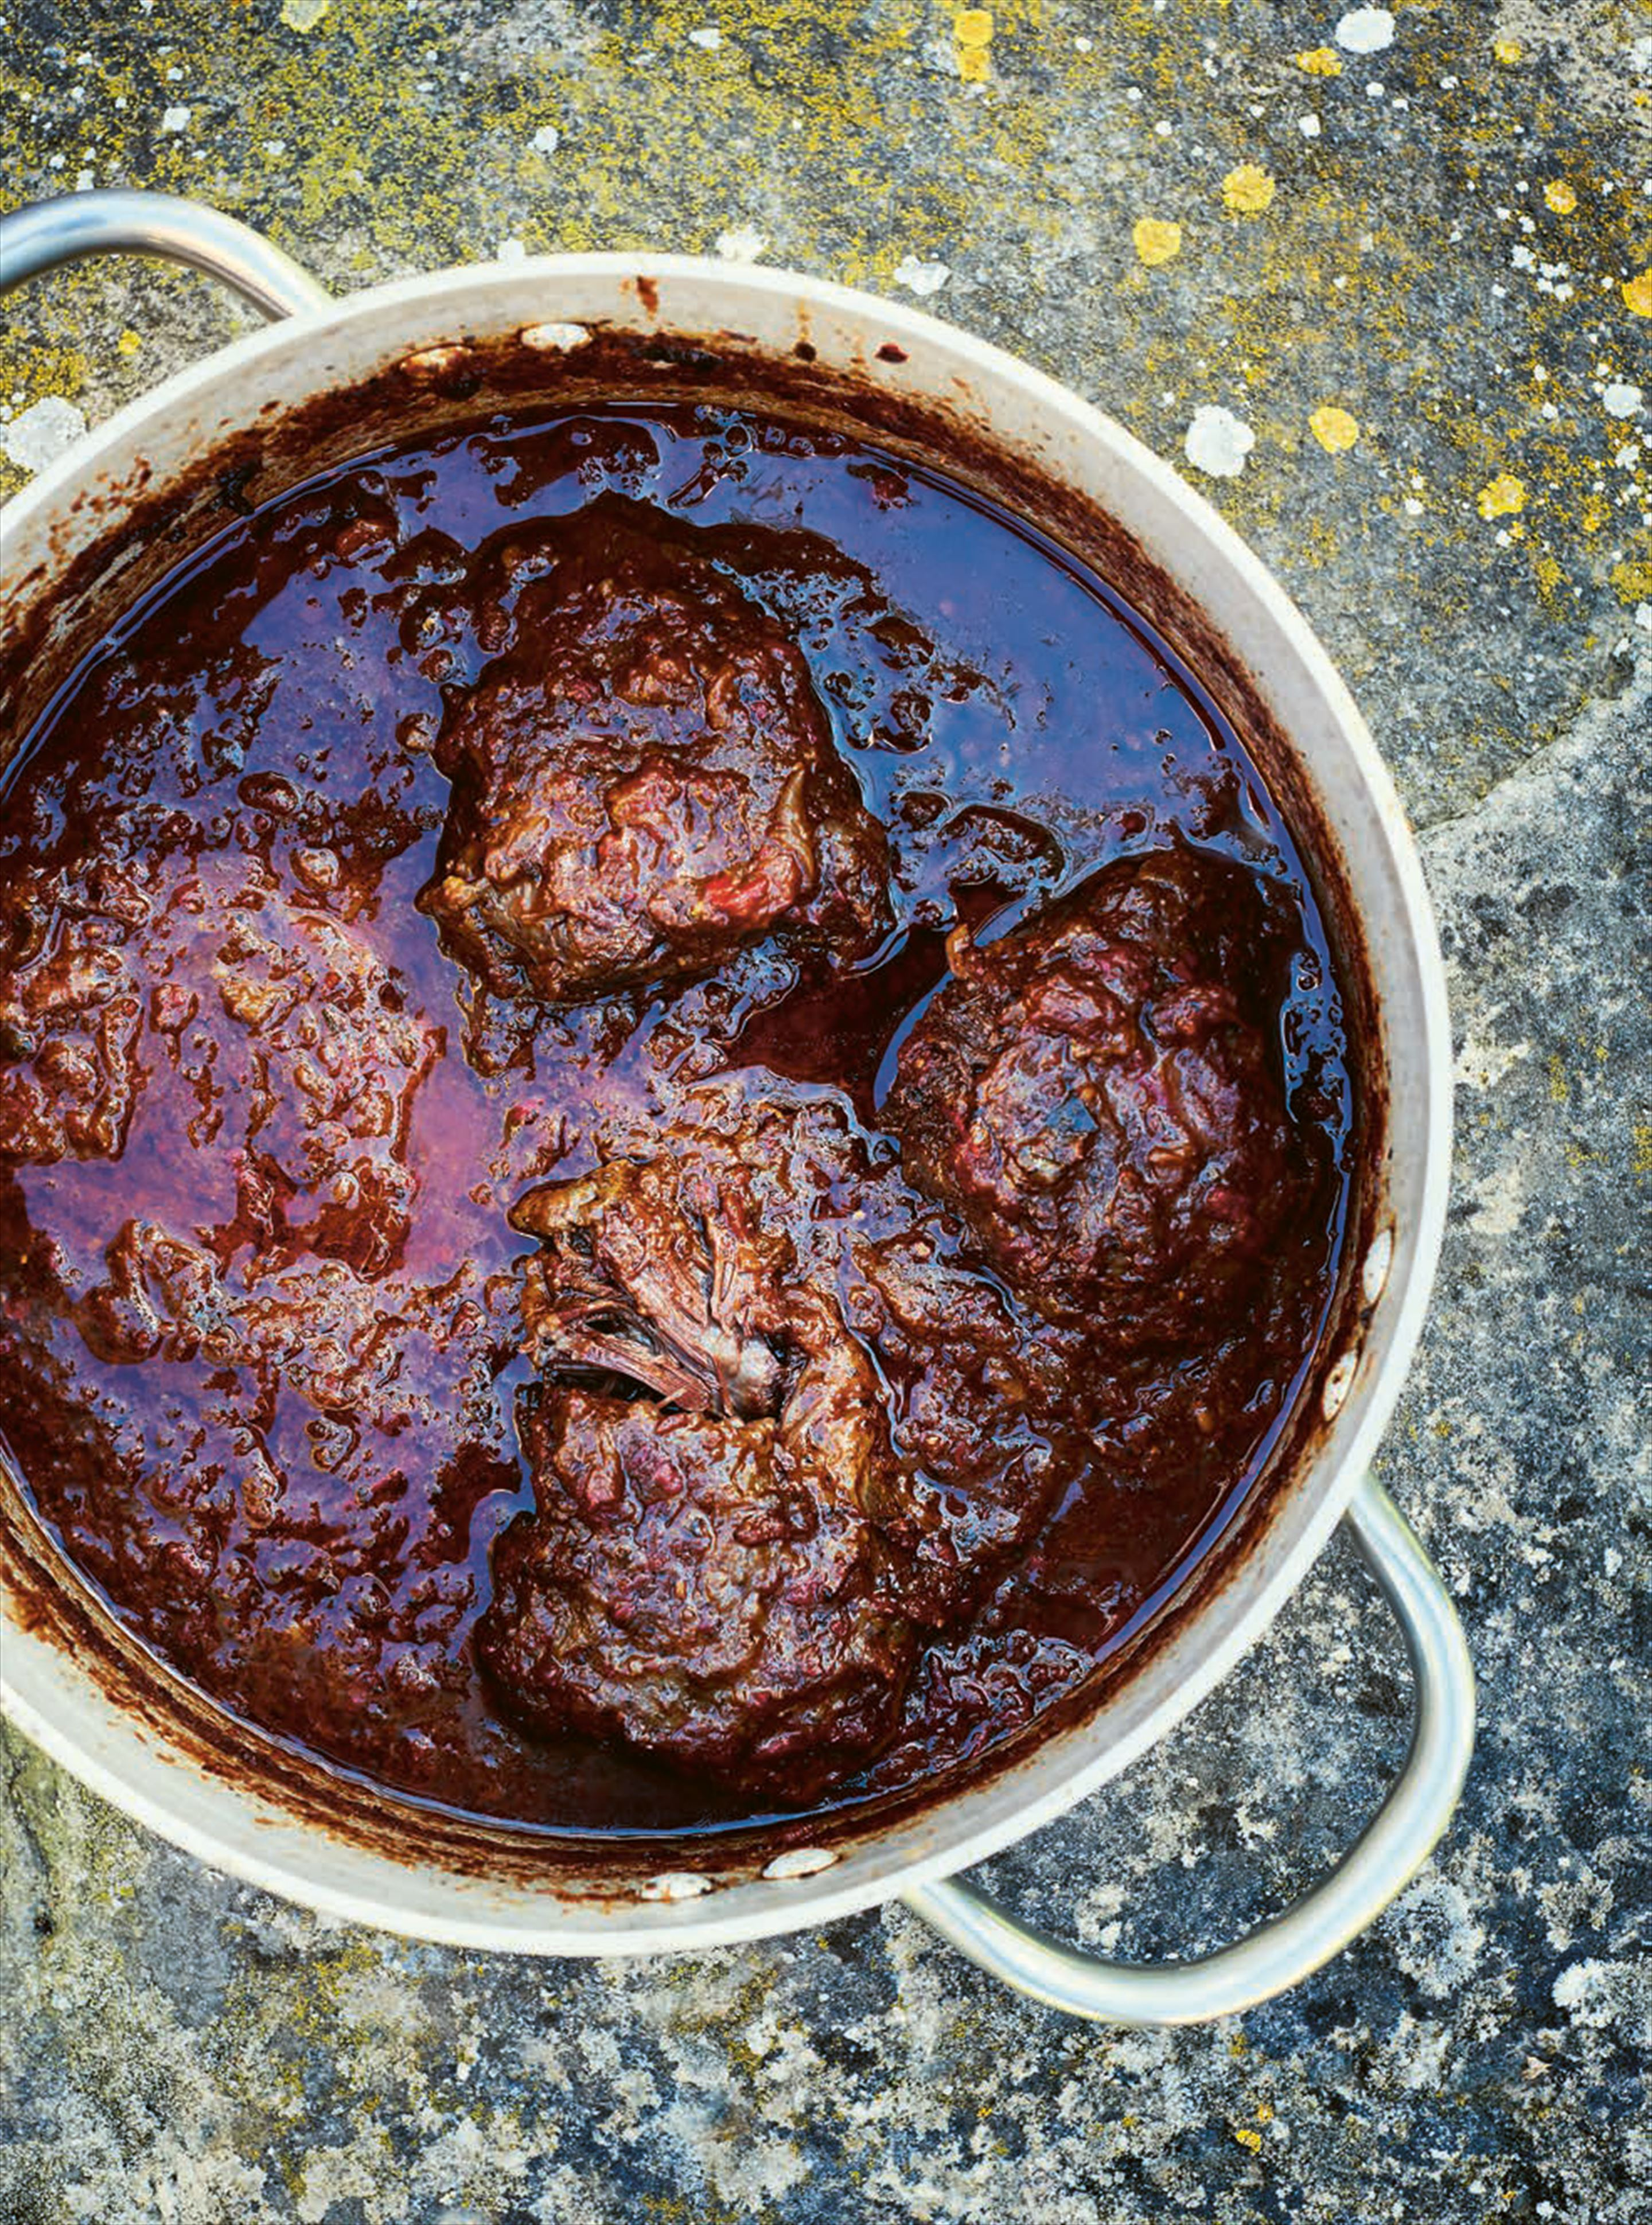 Slow-cooked ox cheek in spicy tomato sauce